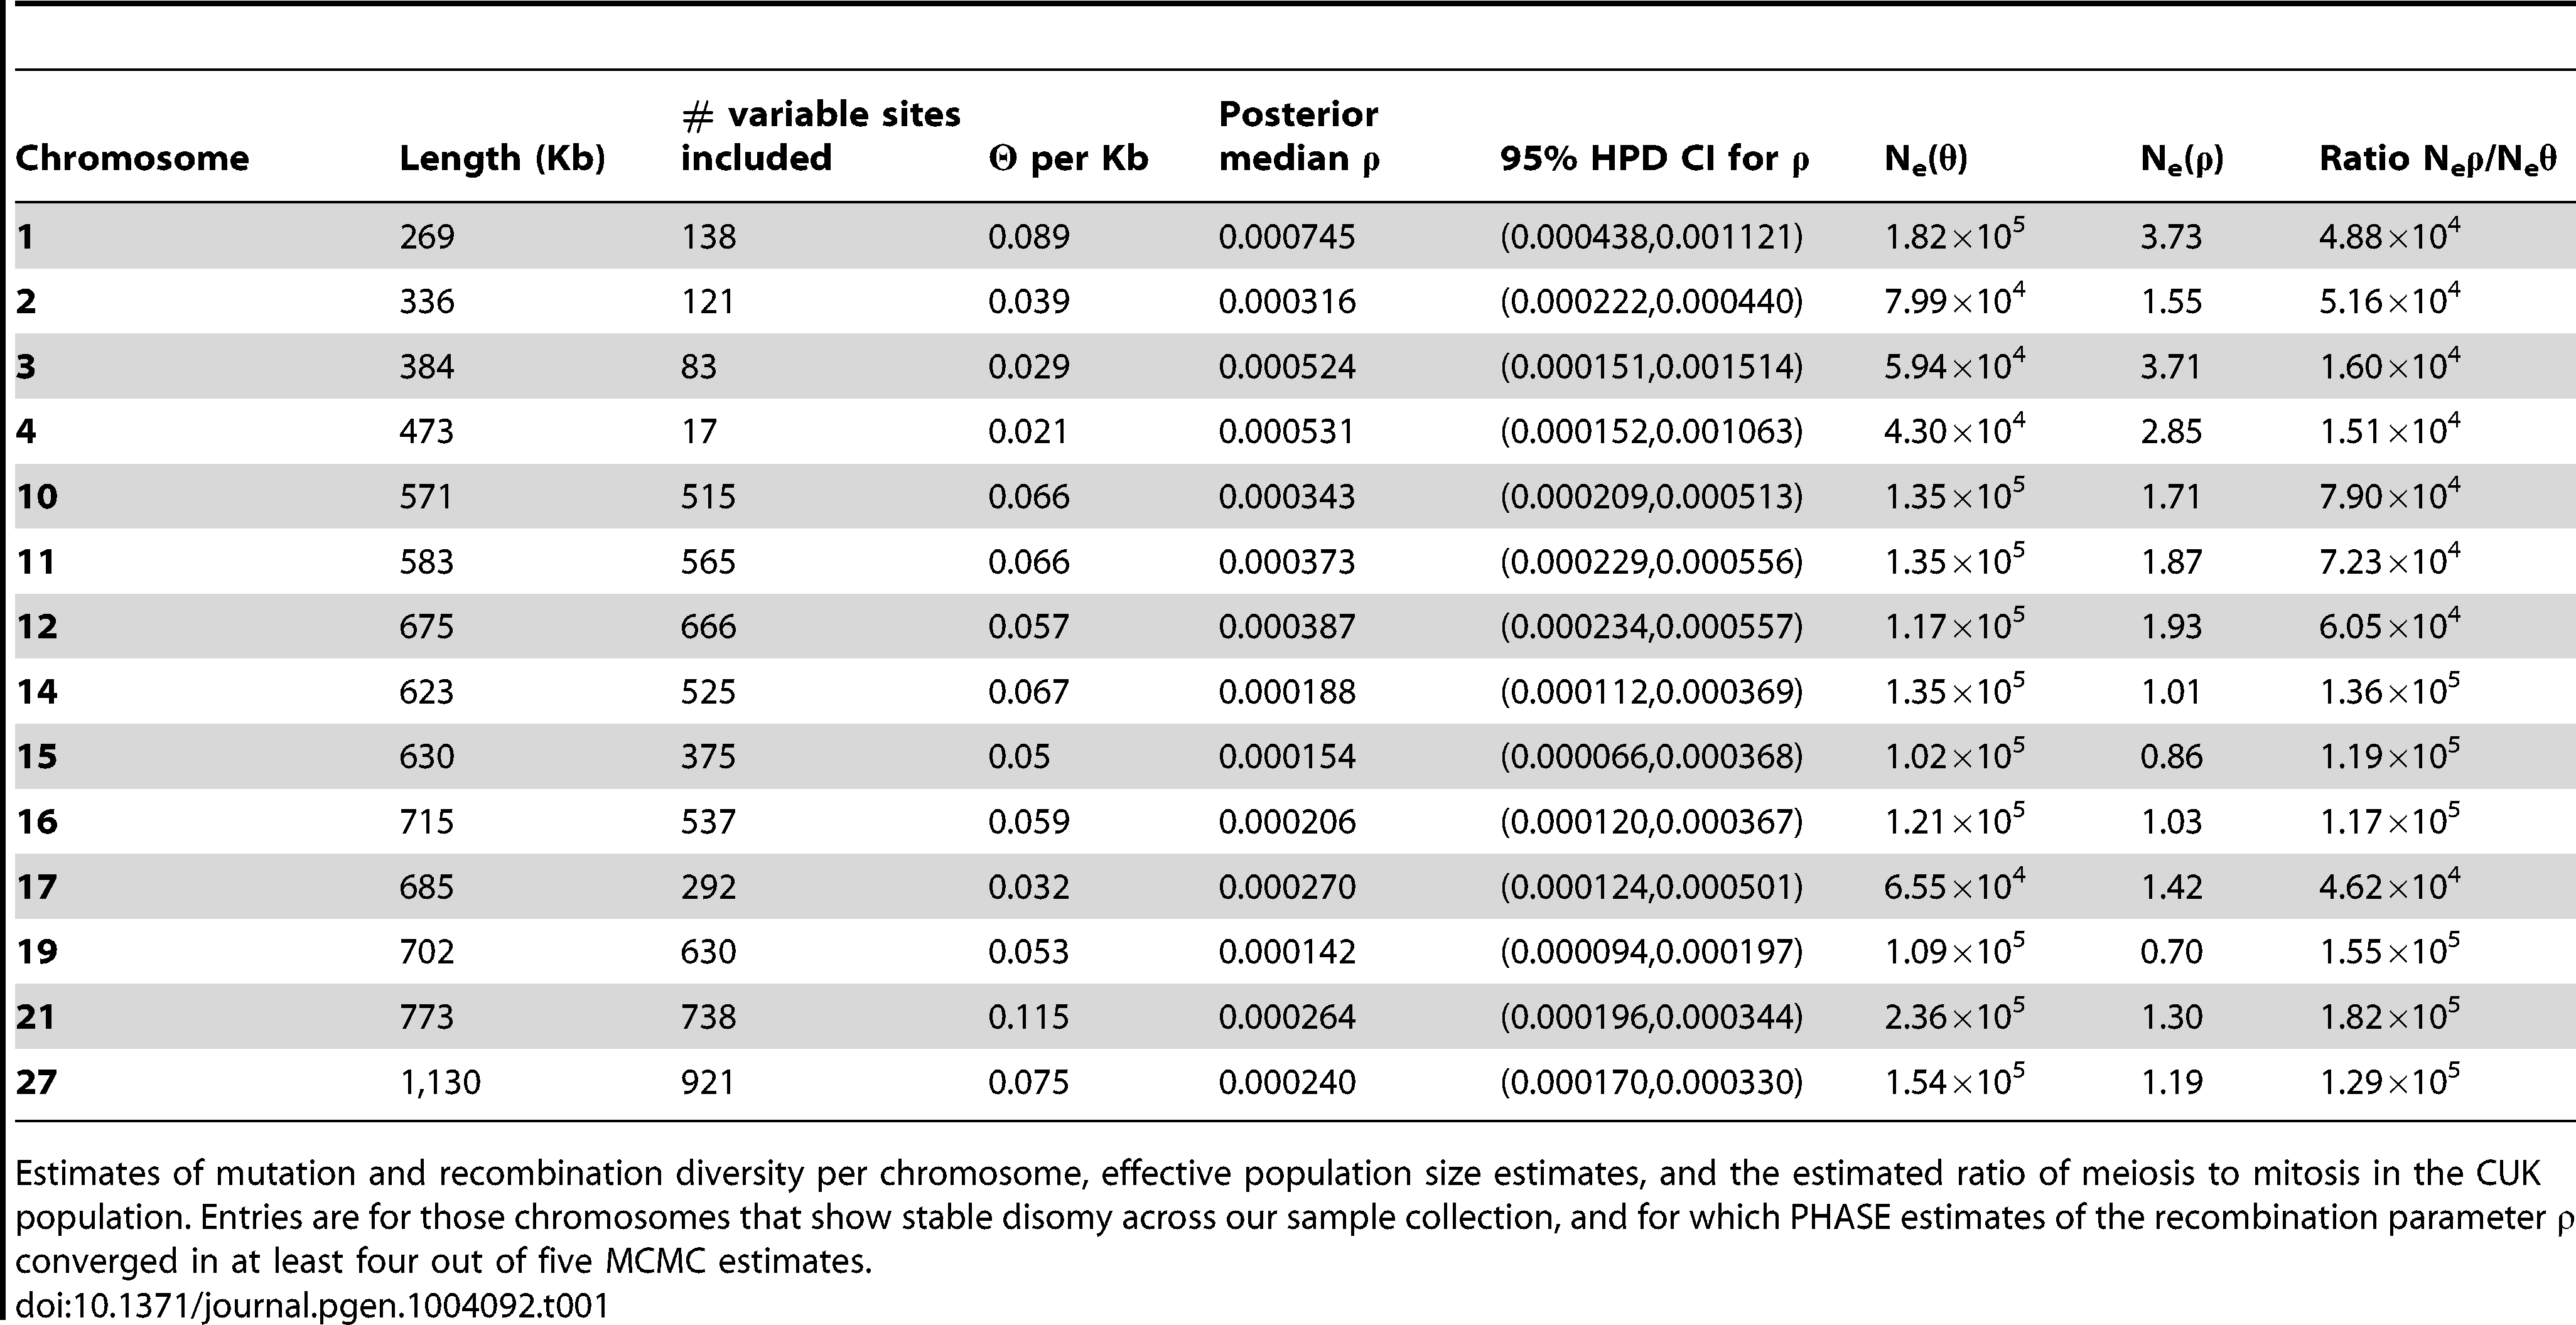 Mutation and recombination diversity give two different estimates of effective population size of the Çukurova population.